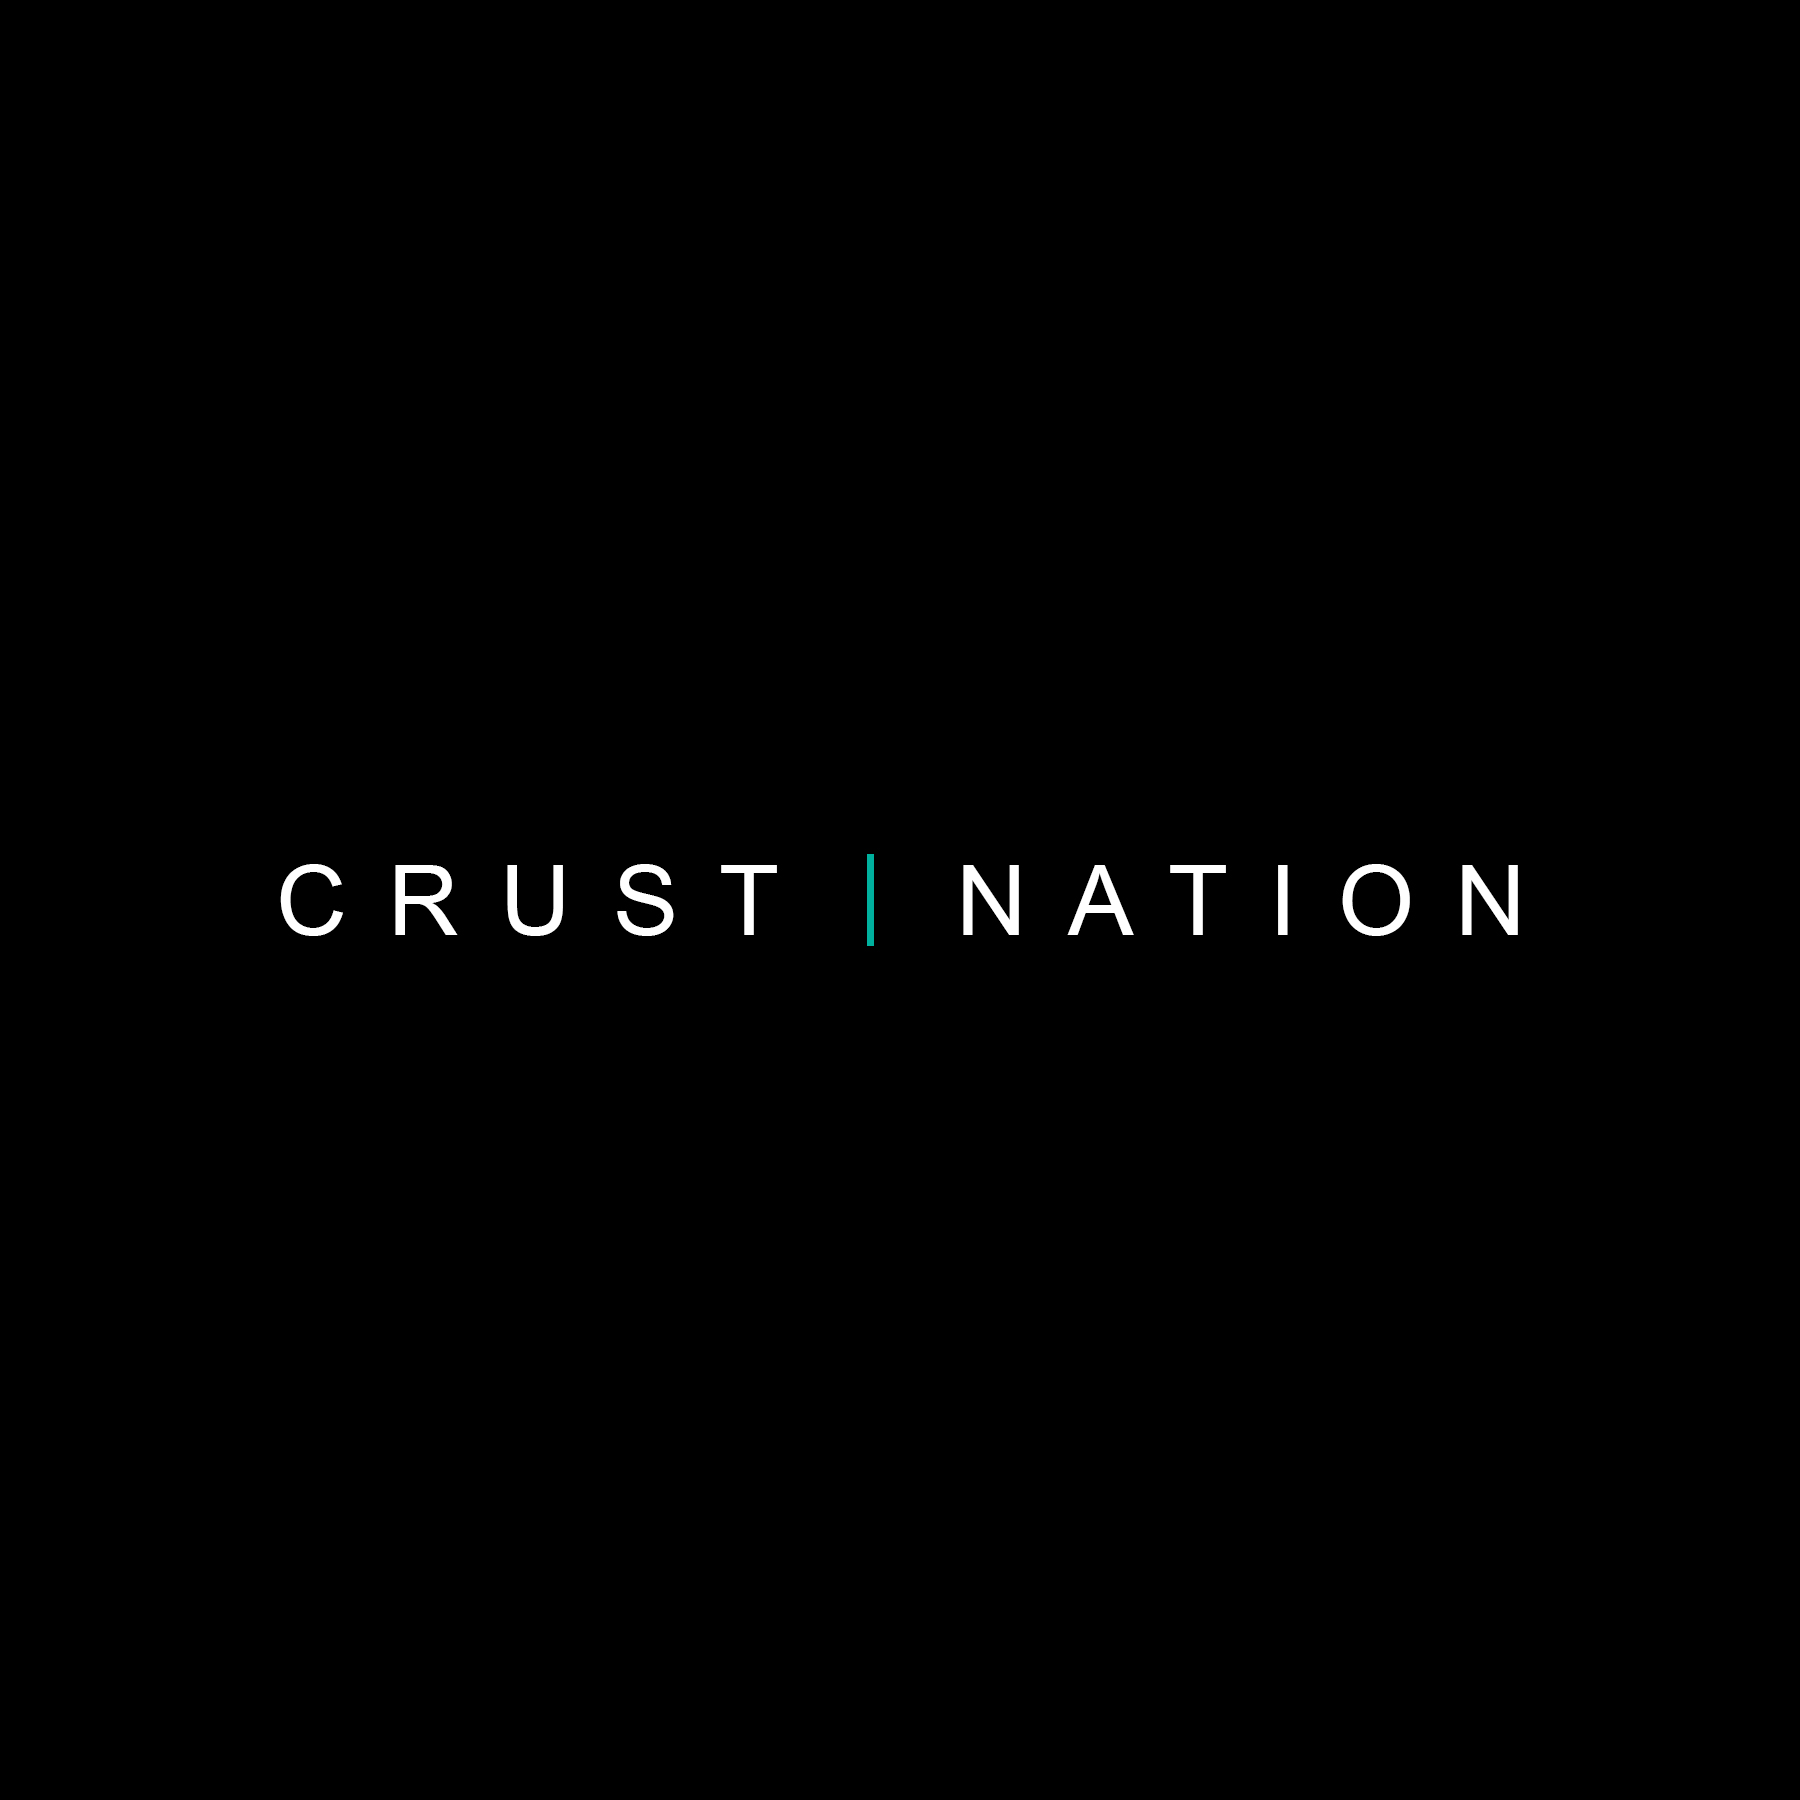 Crust Nation Marketing Group